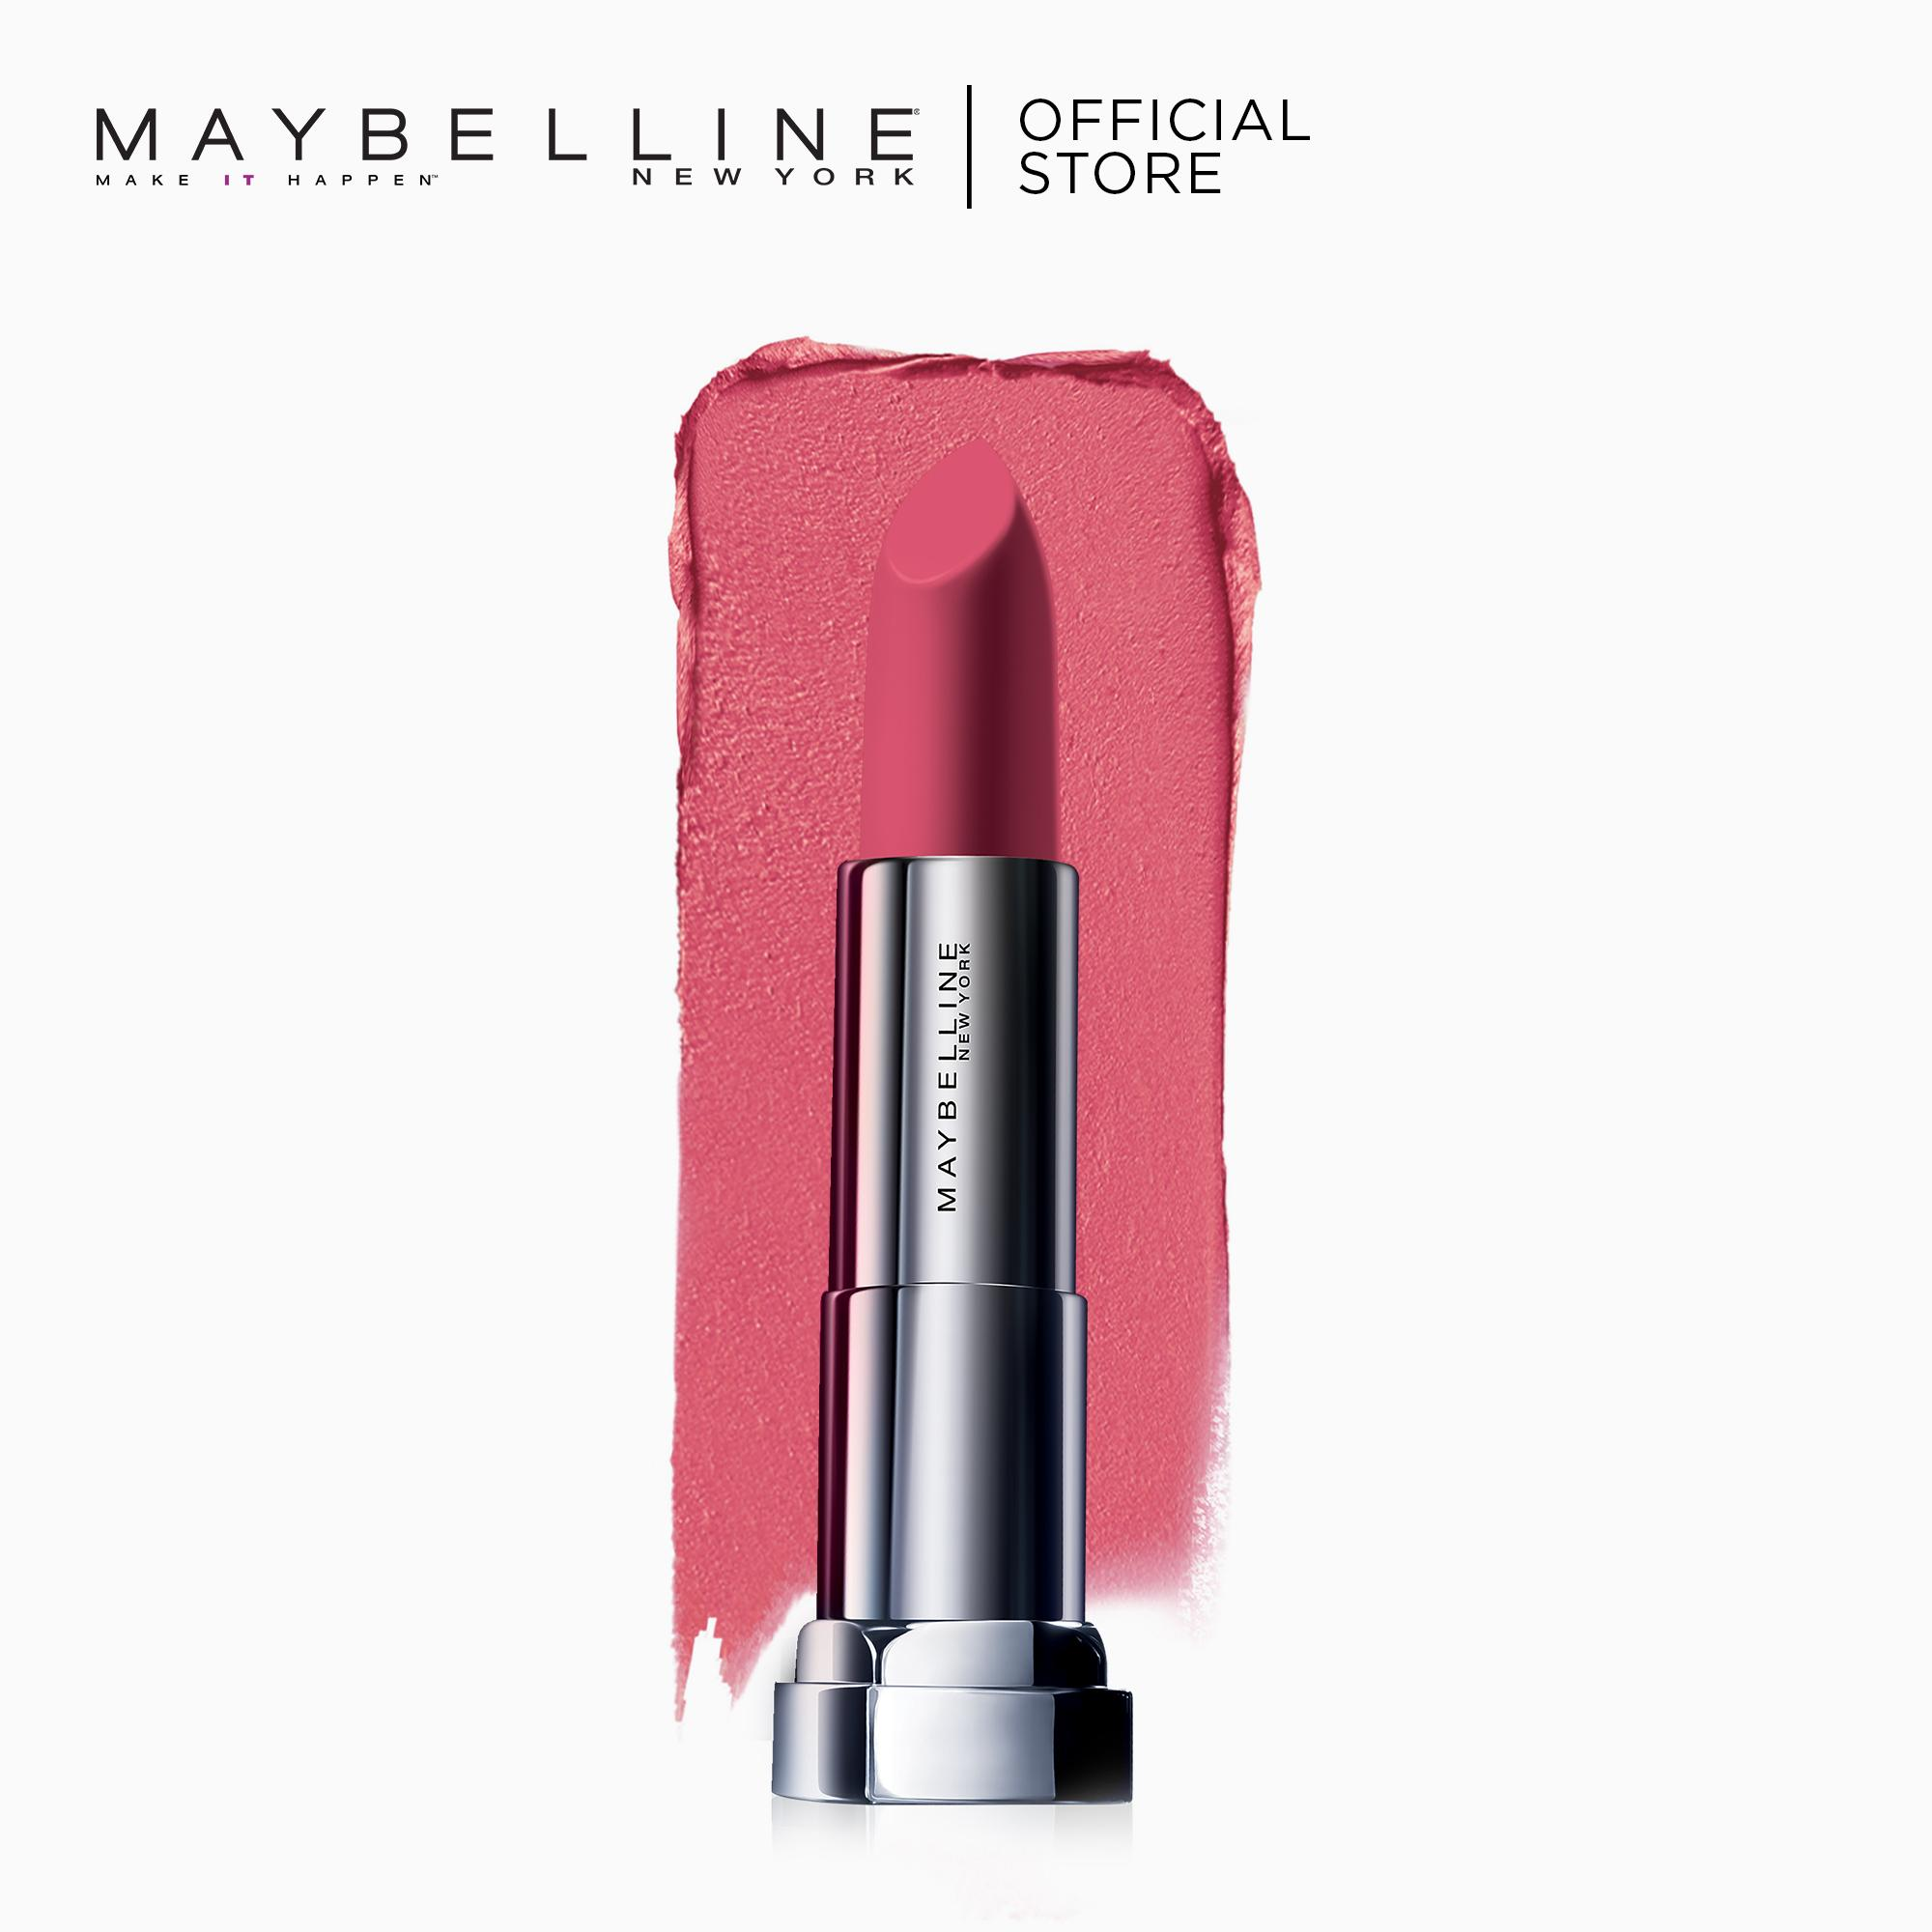 Maybelline Color Sensational Powder Matte Lipstick (Technically Pink) Philippines